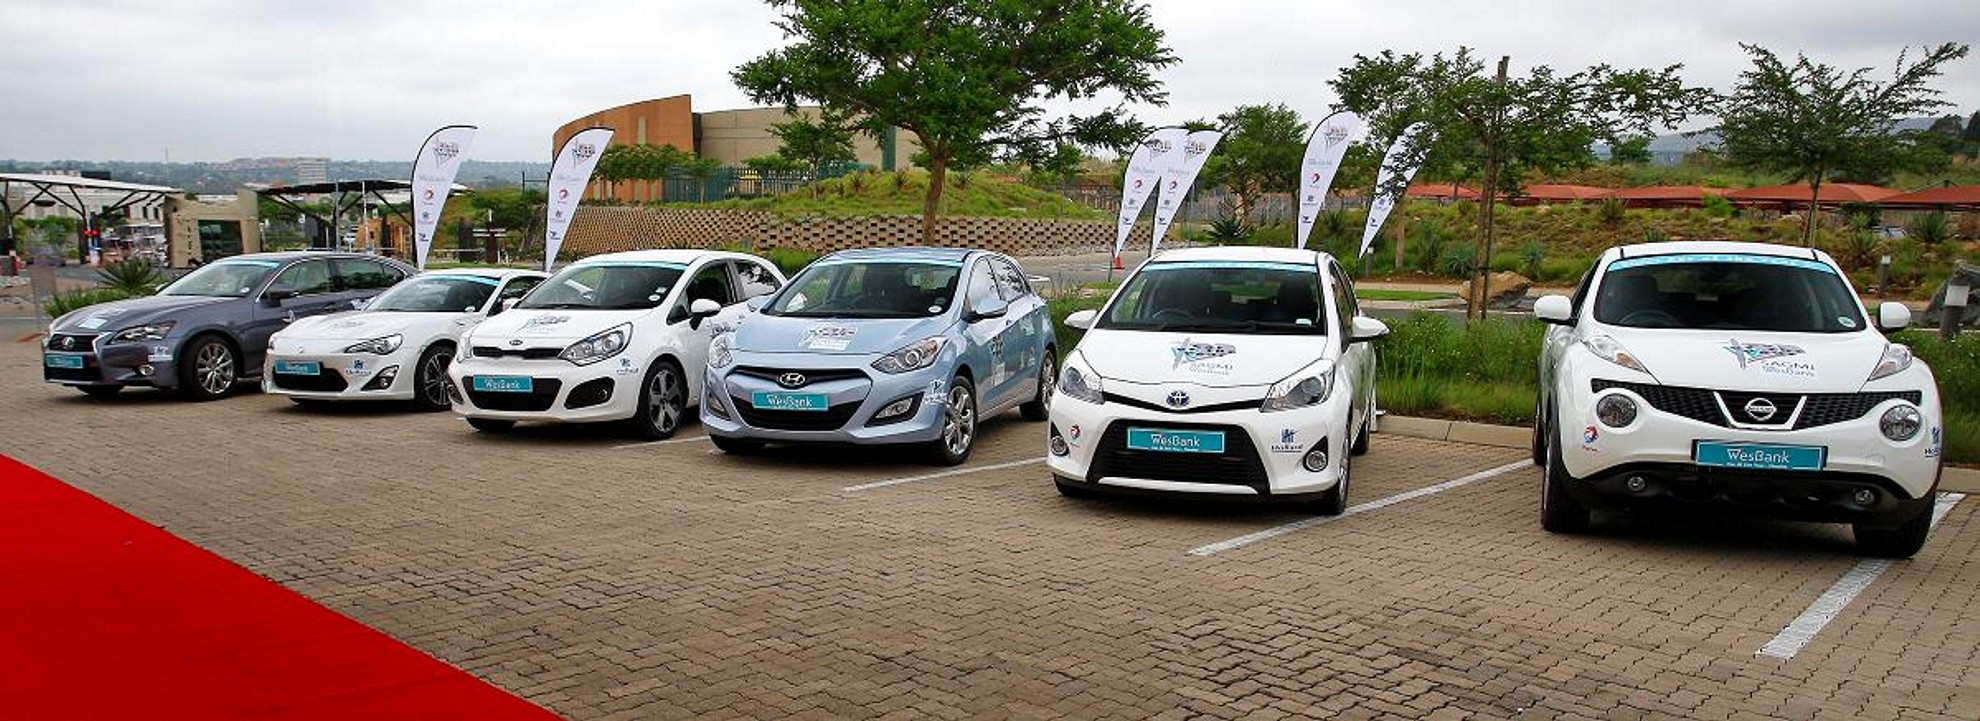 Car of the year 2013 South Africa